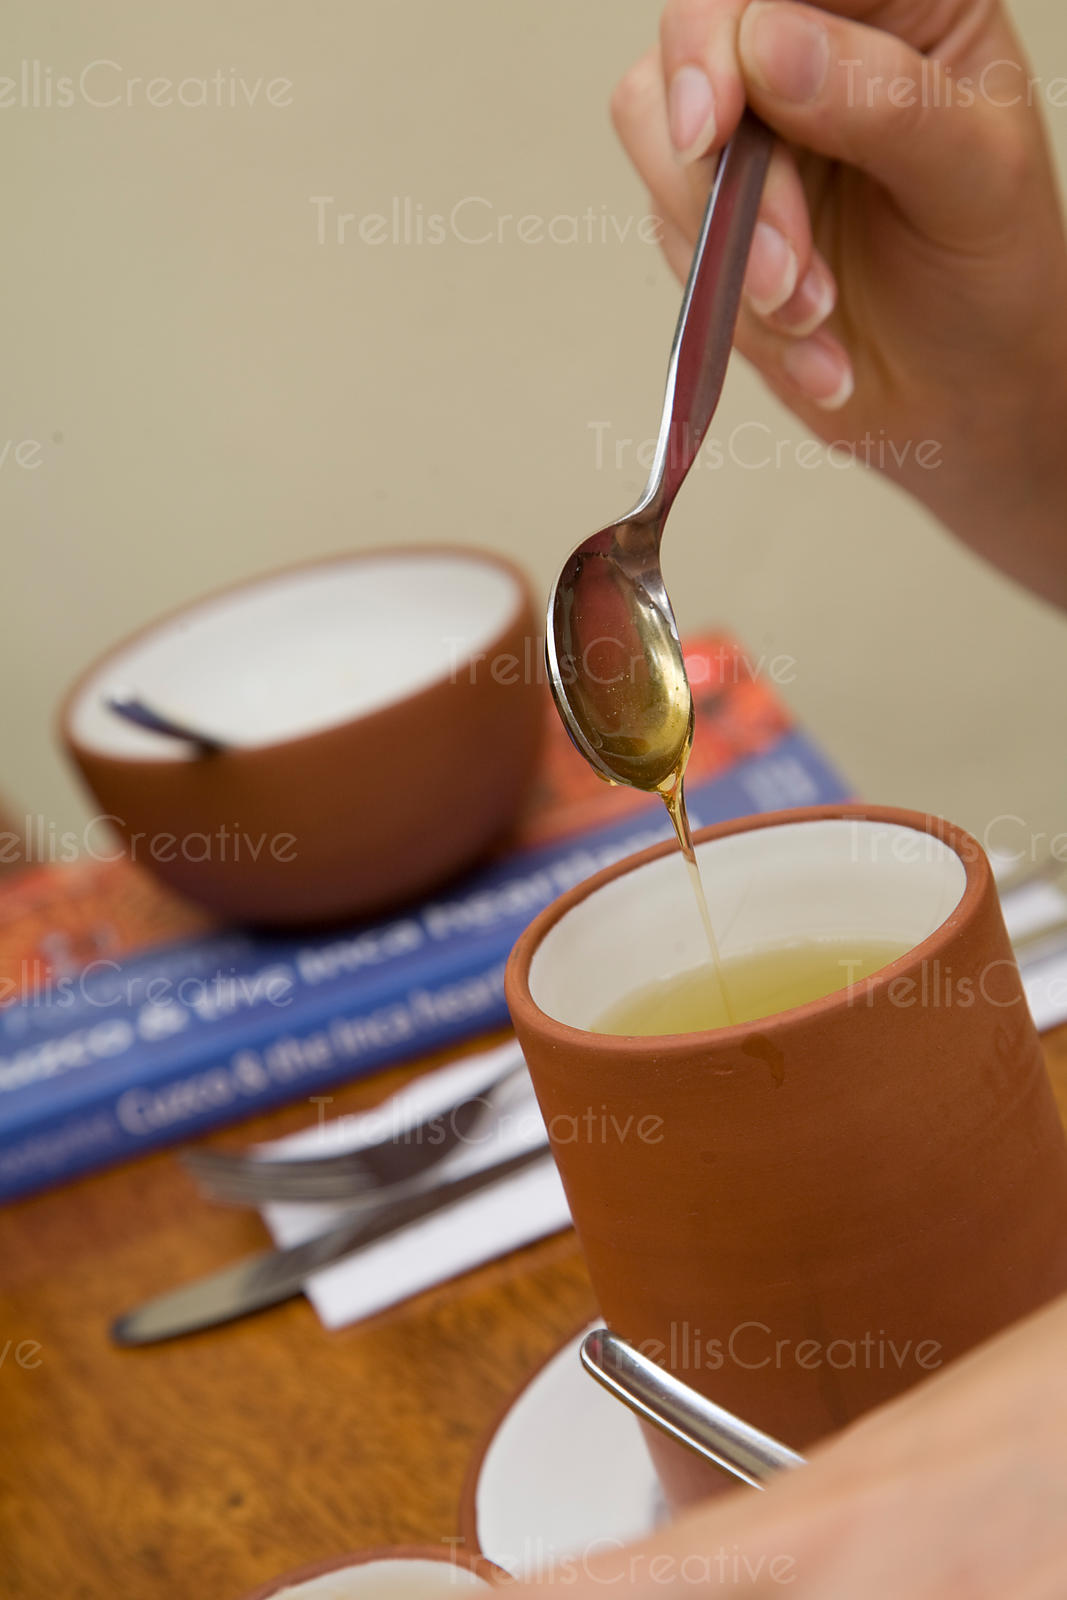 A young woman pours honey into hot herbal tea